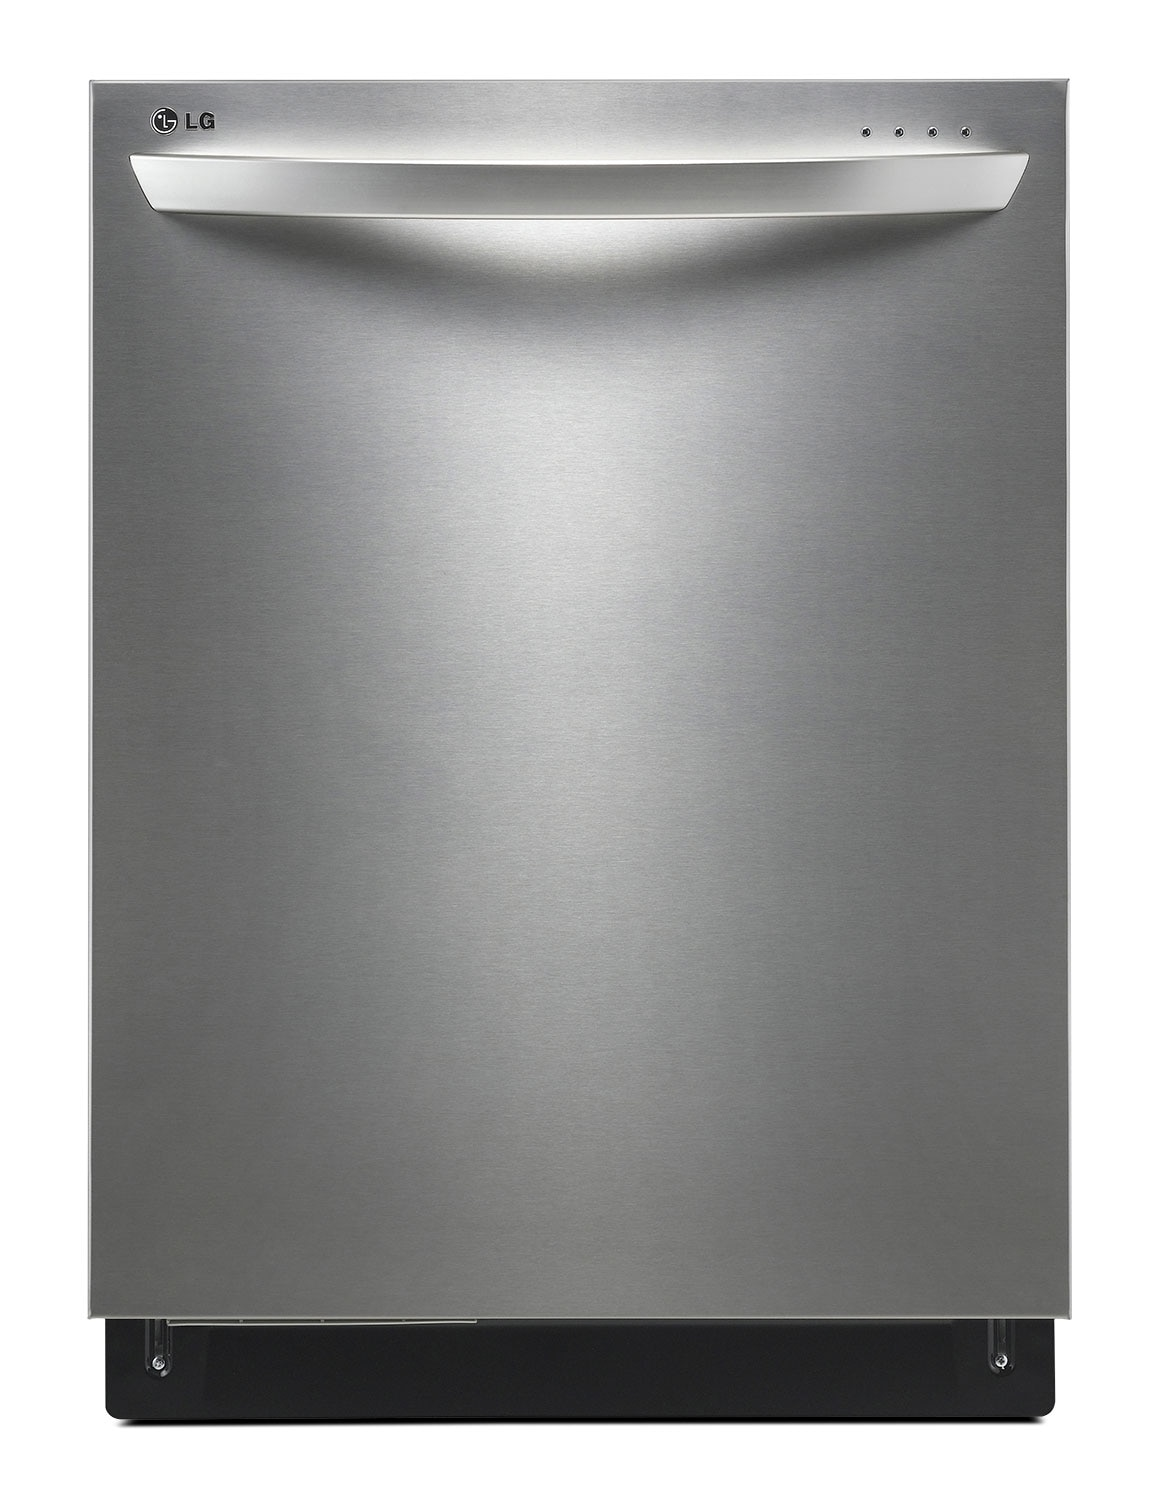 "Clean-Up - LG Appliances Stainless Steel 24"" Dishwasher - LDF8874ST"